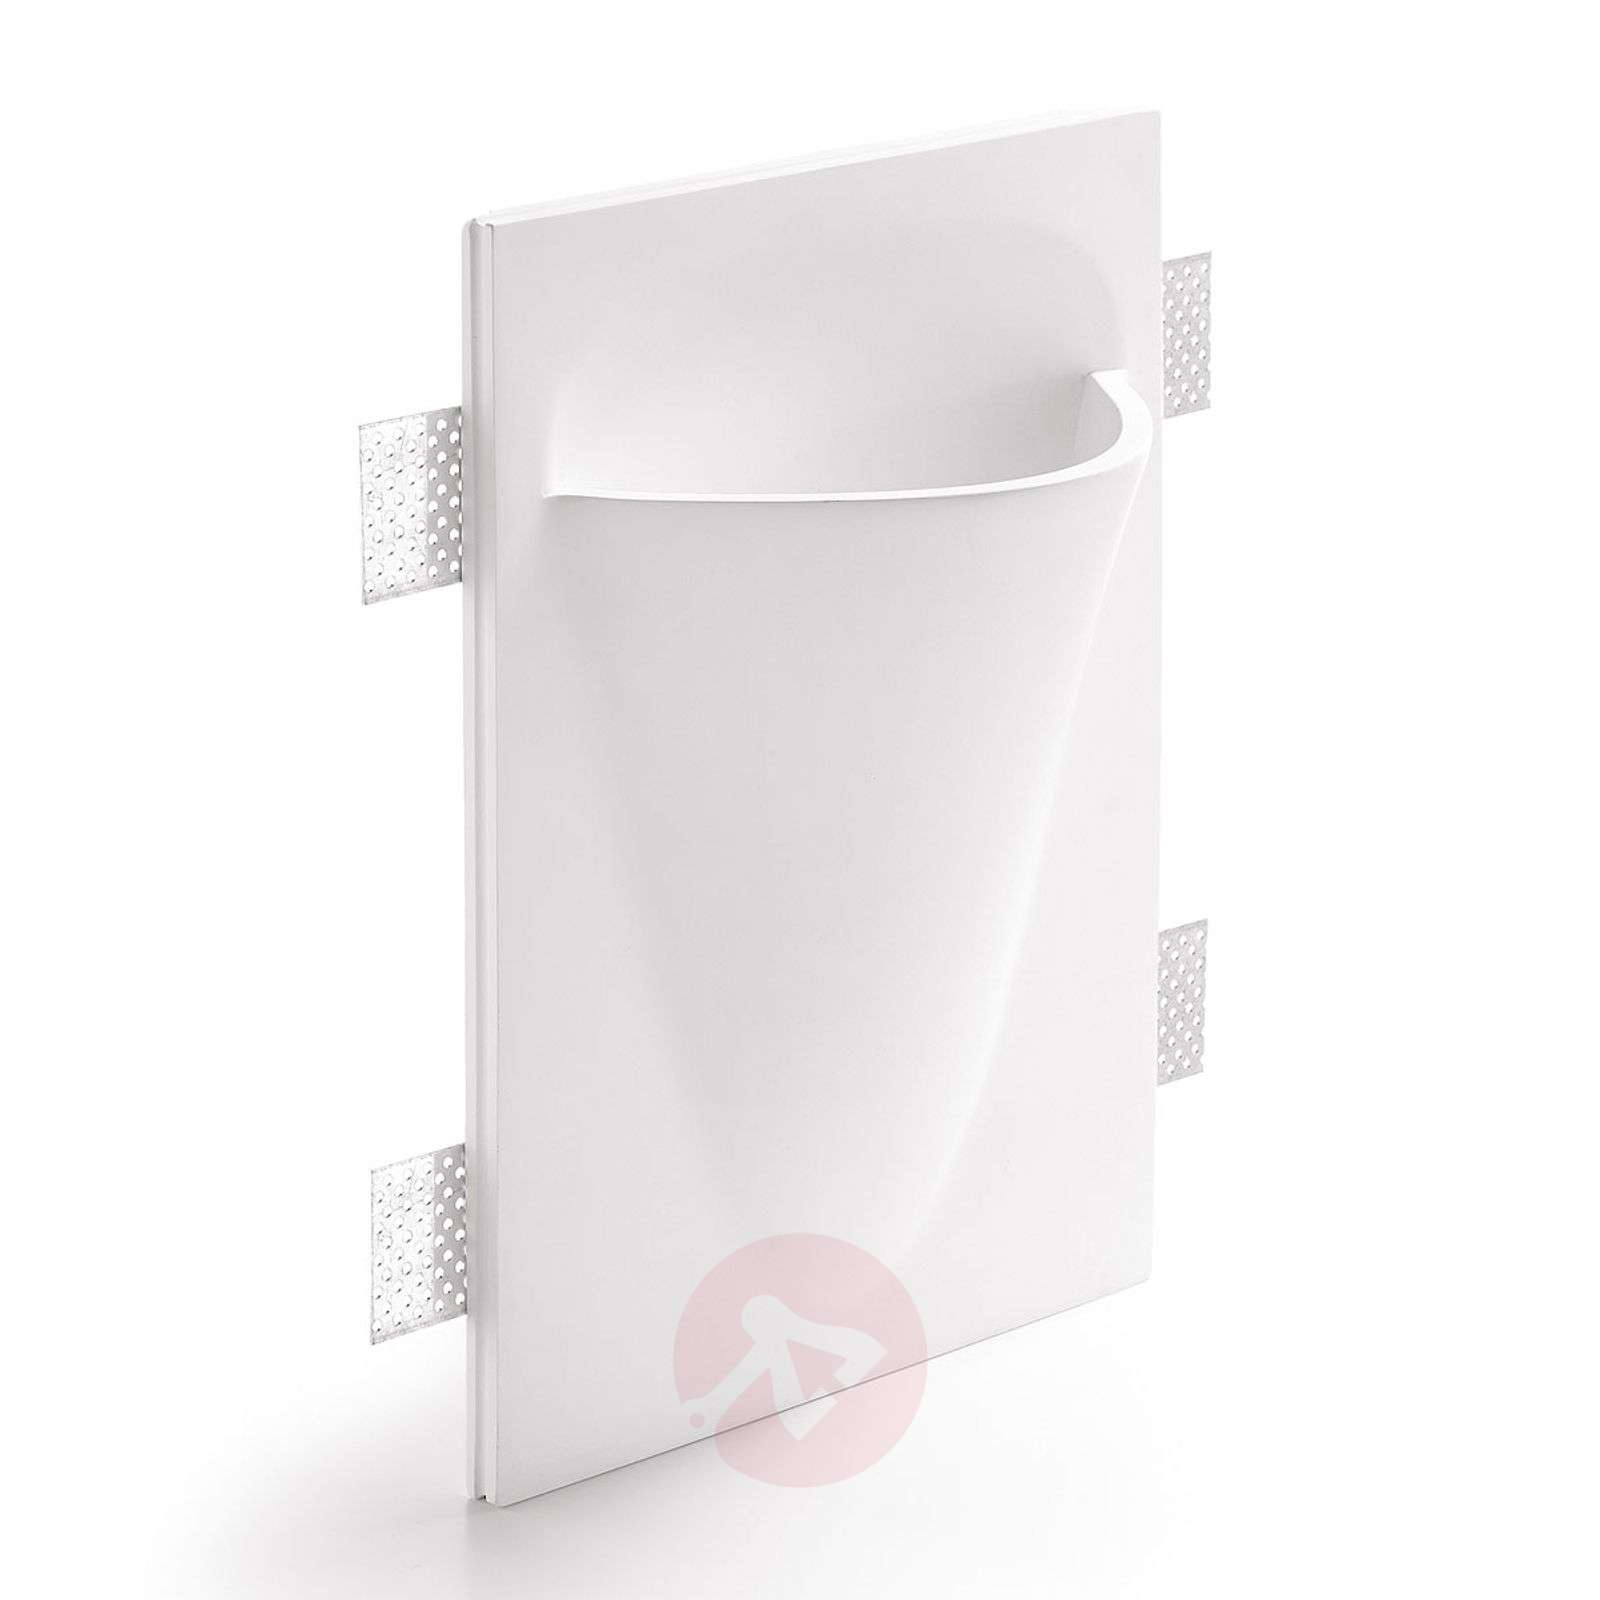 Lively recessed wall light Artaferne-8539422-01